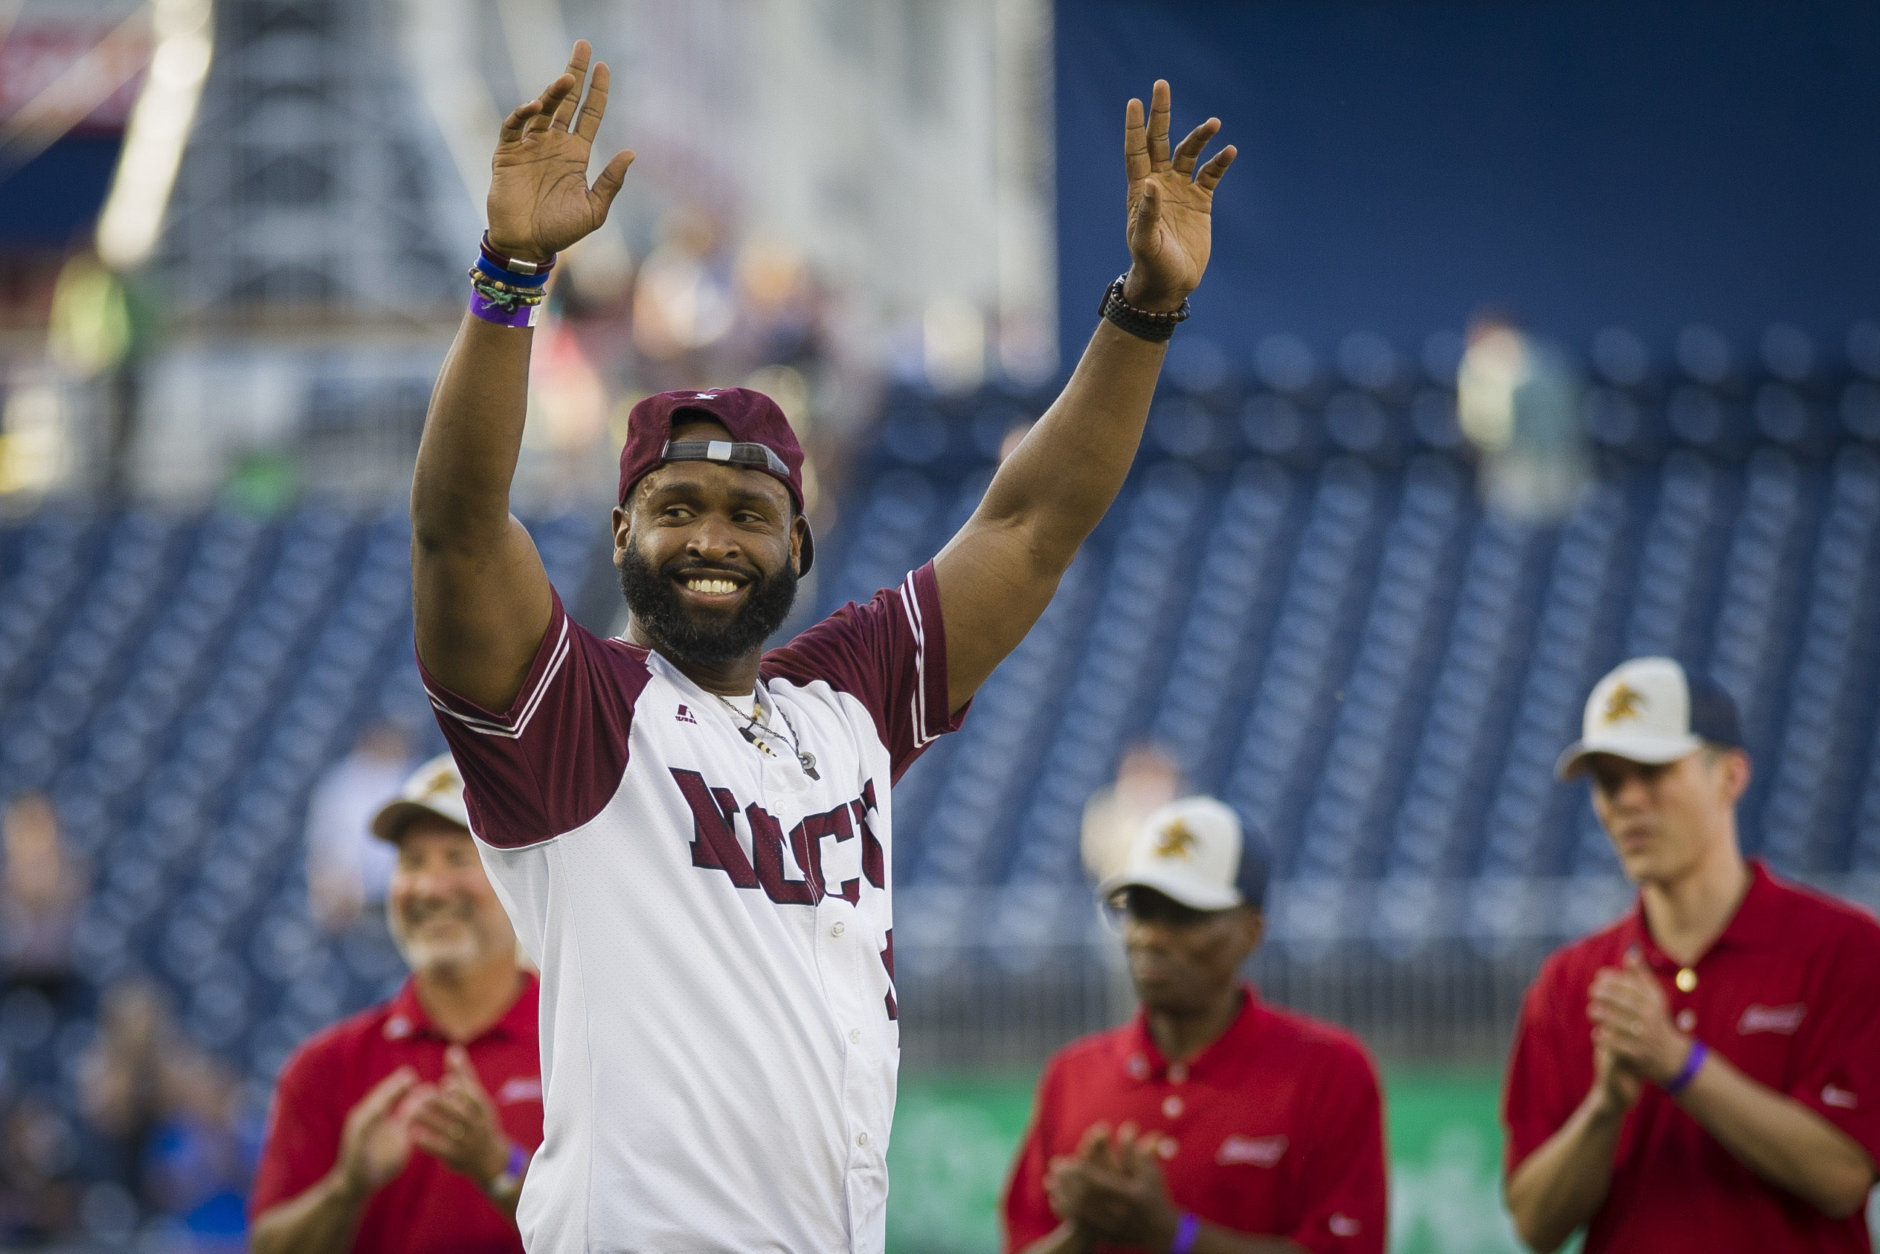 Capitol Police Special Agent David Bailey celebrates after throwing out the first pitch to start the 57th Congressional Baseball Game at National's Park in Washington, Thursday, June 14, 2018. On June 14, 2017, Congressional members were victims of a shooting at the baseball field they were practicing on in Alexandria, Va. (AP Photo/Cliff Owen)